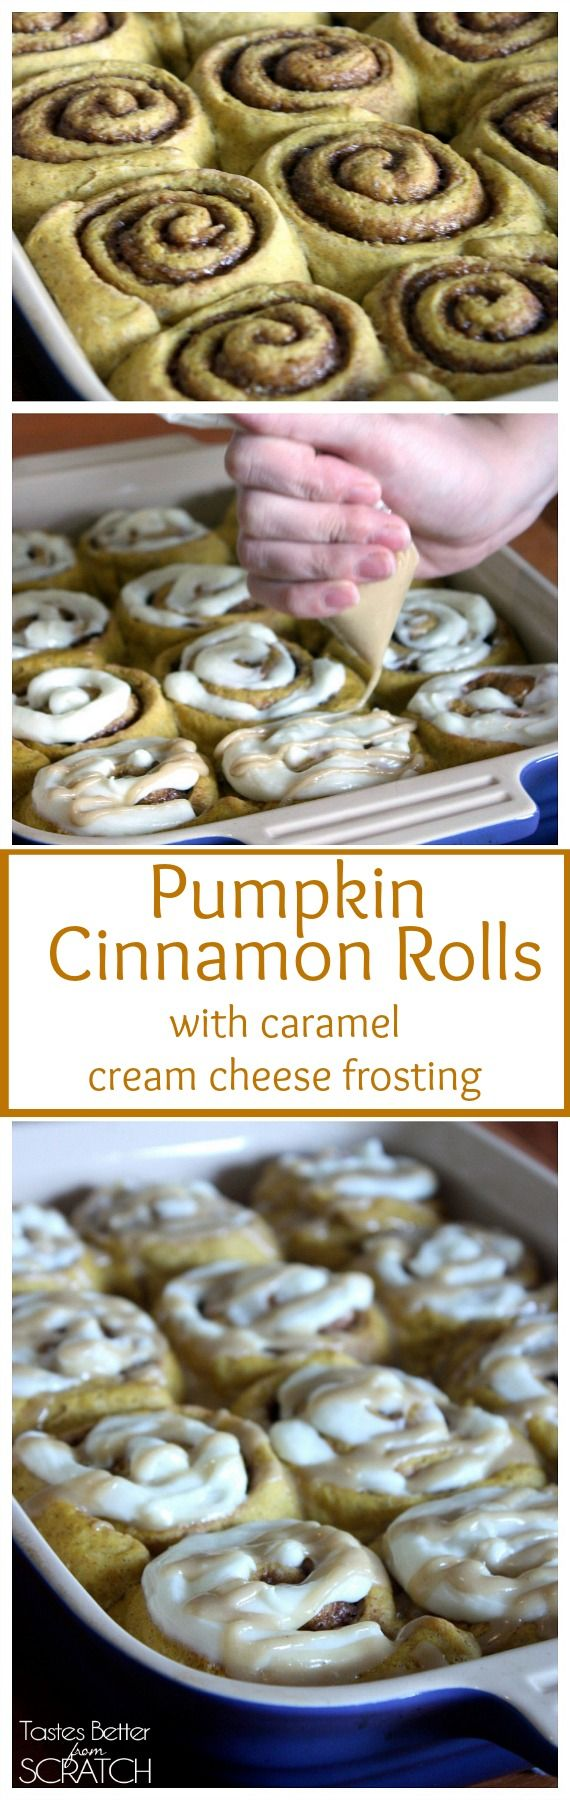 Pumpkin Cinnamon Rolls with Cream Cheese Frosting Recipe